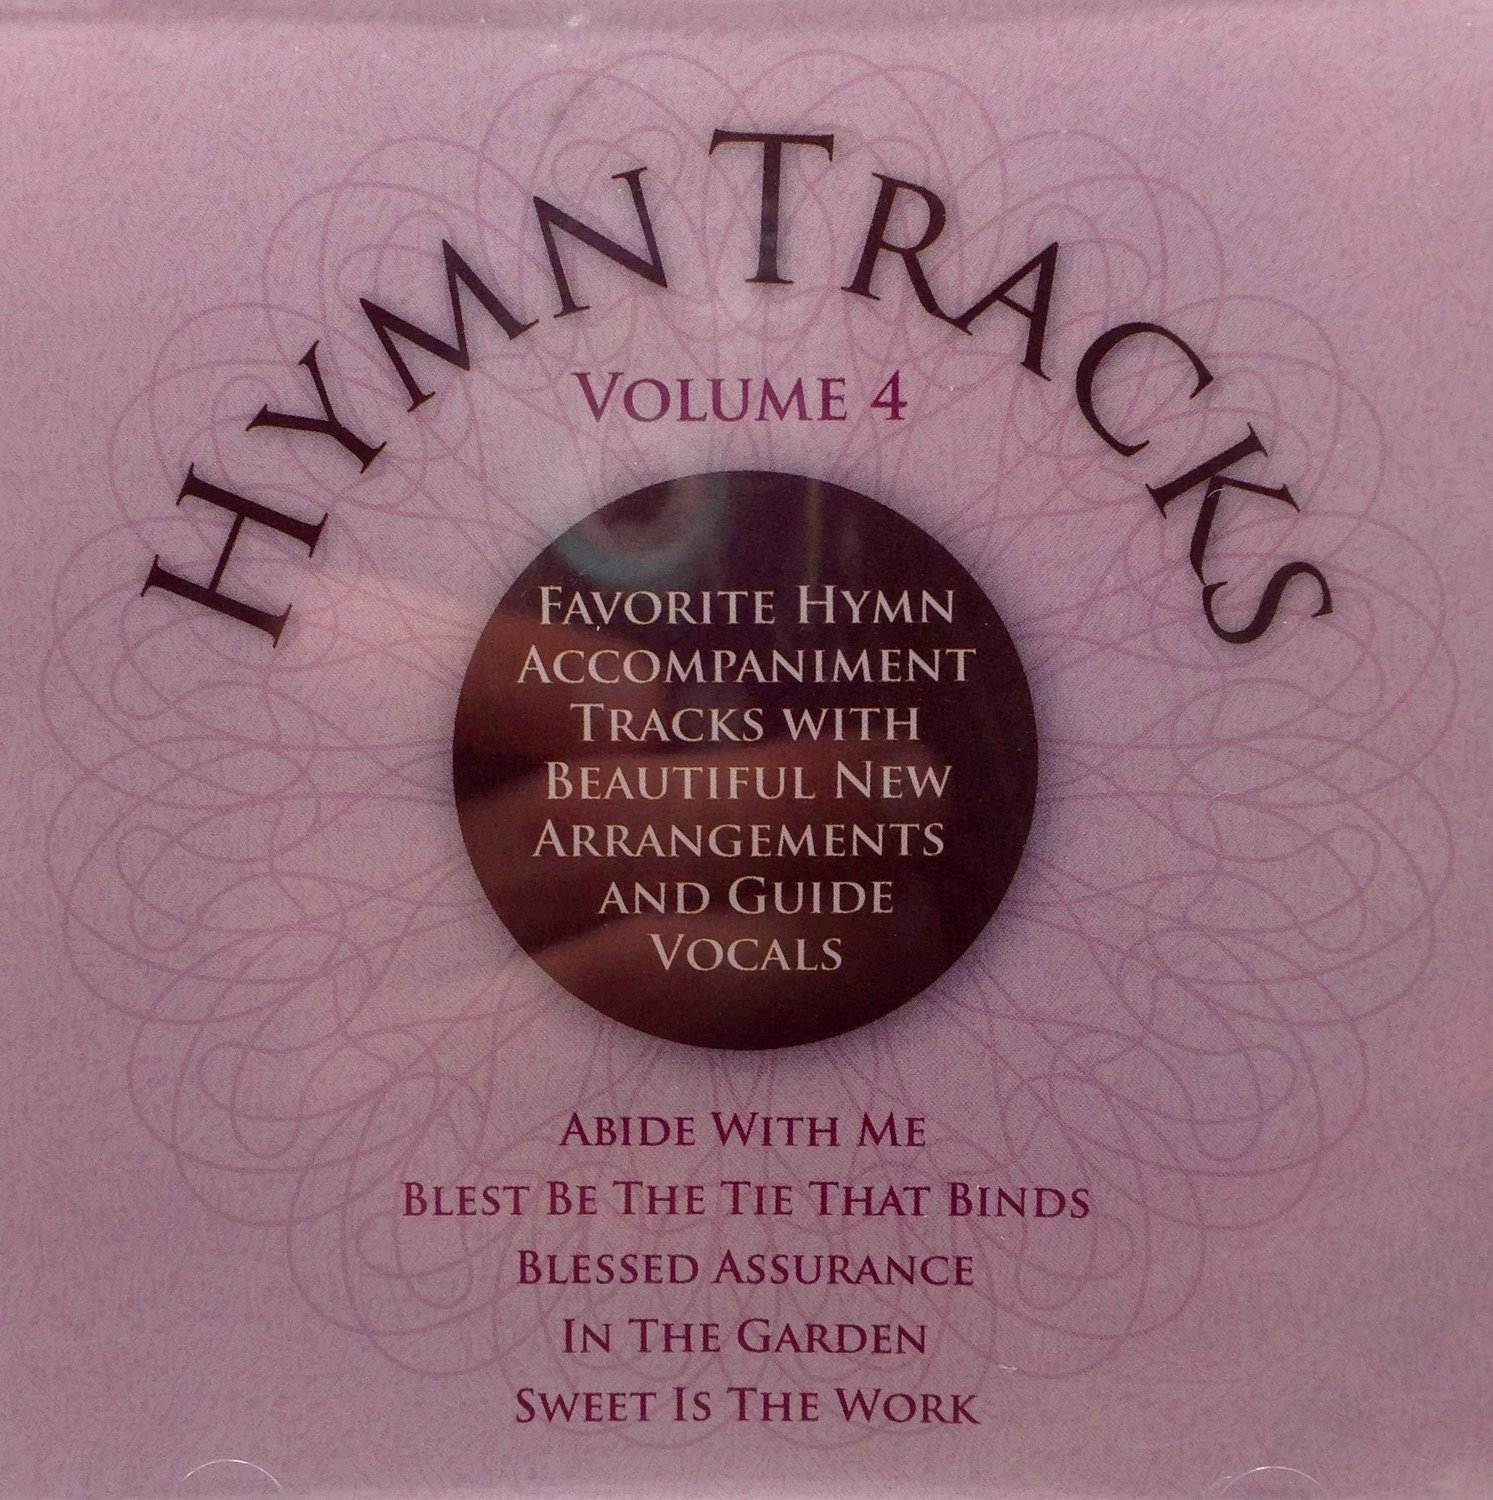 Hymns Tracks Vol. 4 - Favorite Hymn Accompaniments With Beautiful New Arrangements and Guide Vocals